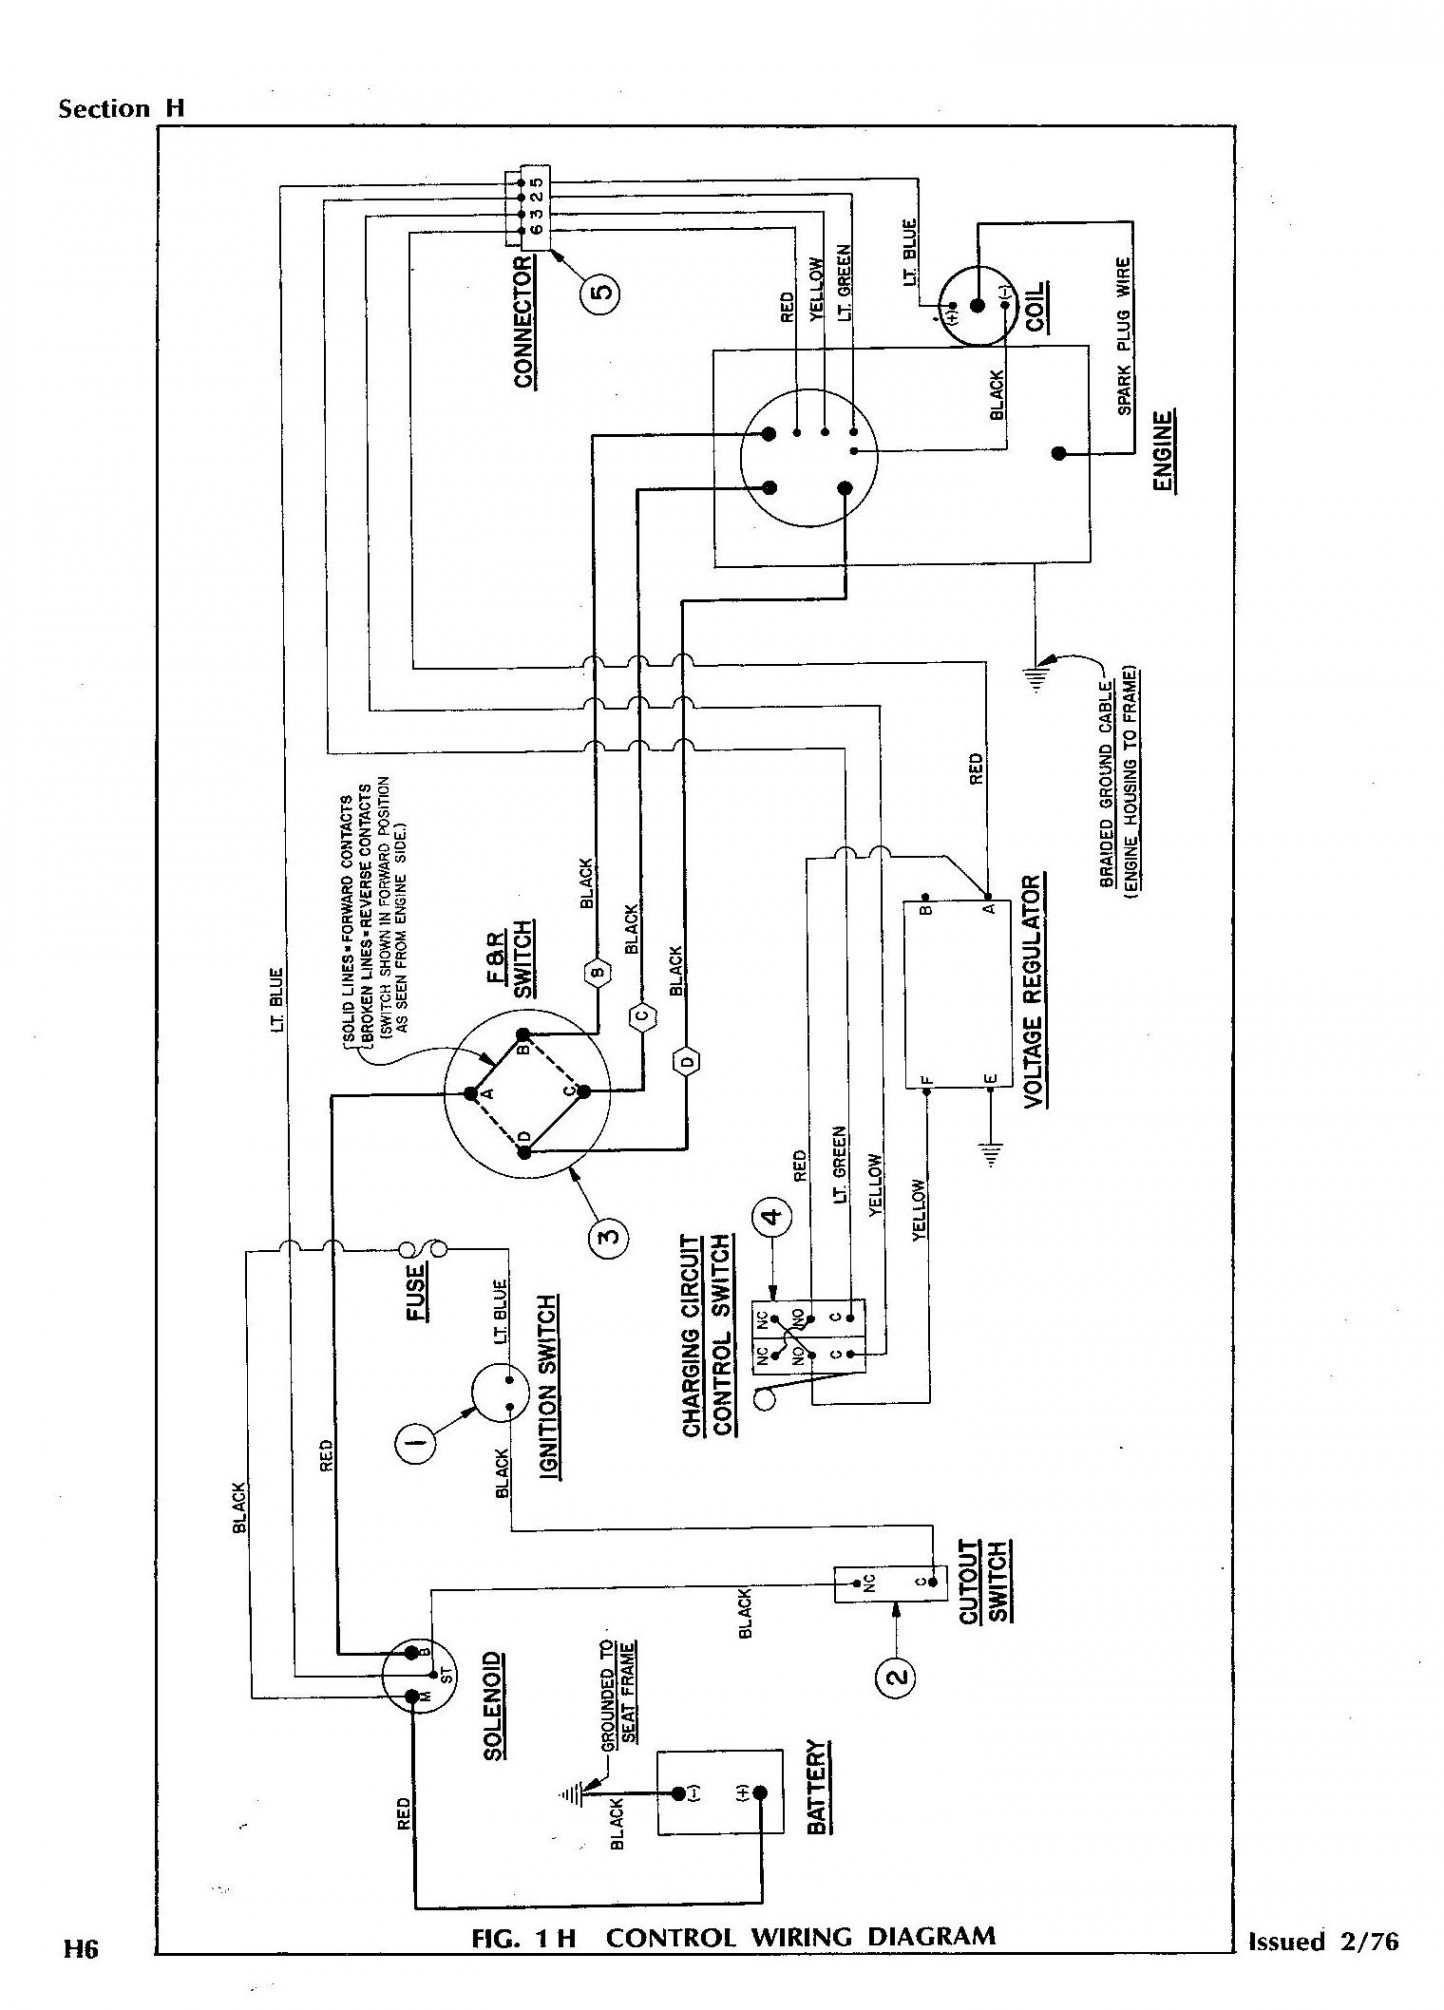 Wiring Diagram For A Club Car Golf Cart